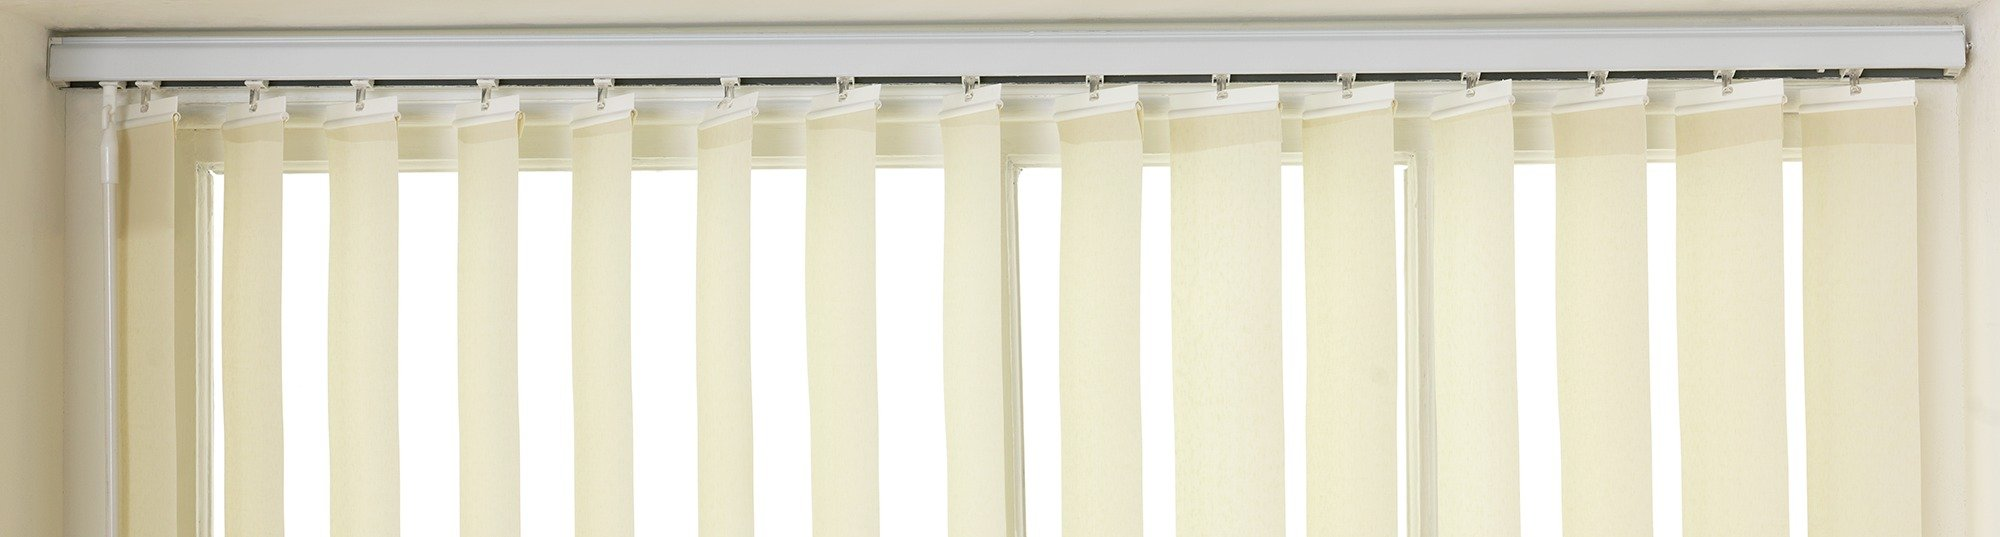 Argos Home Vertical Blind Headrail - 2ft